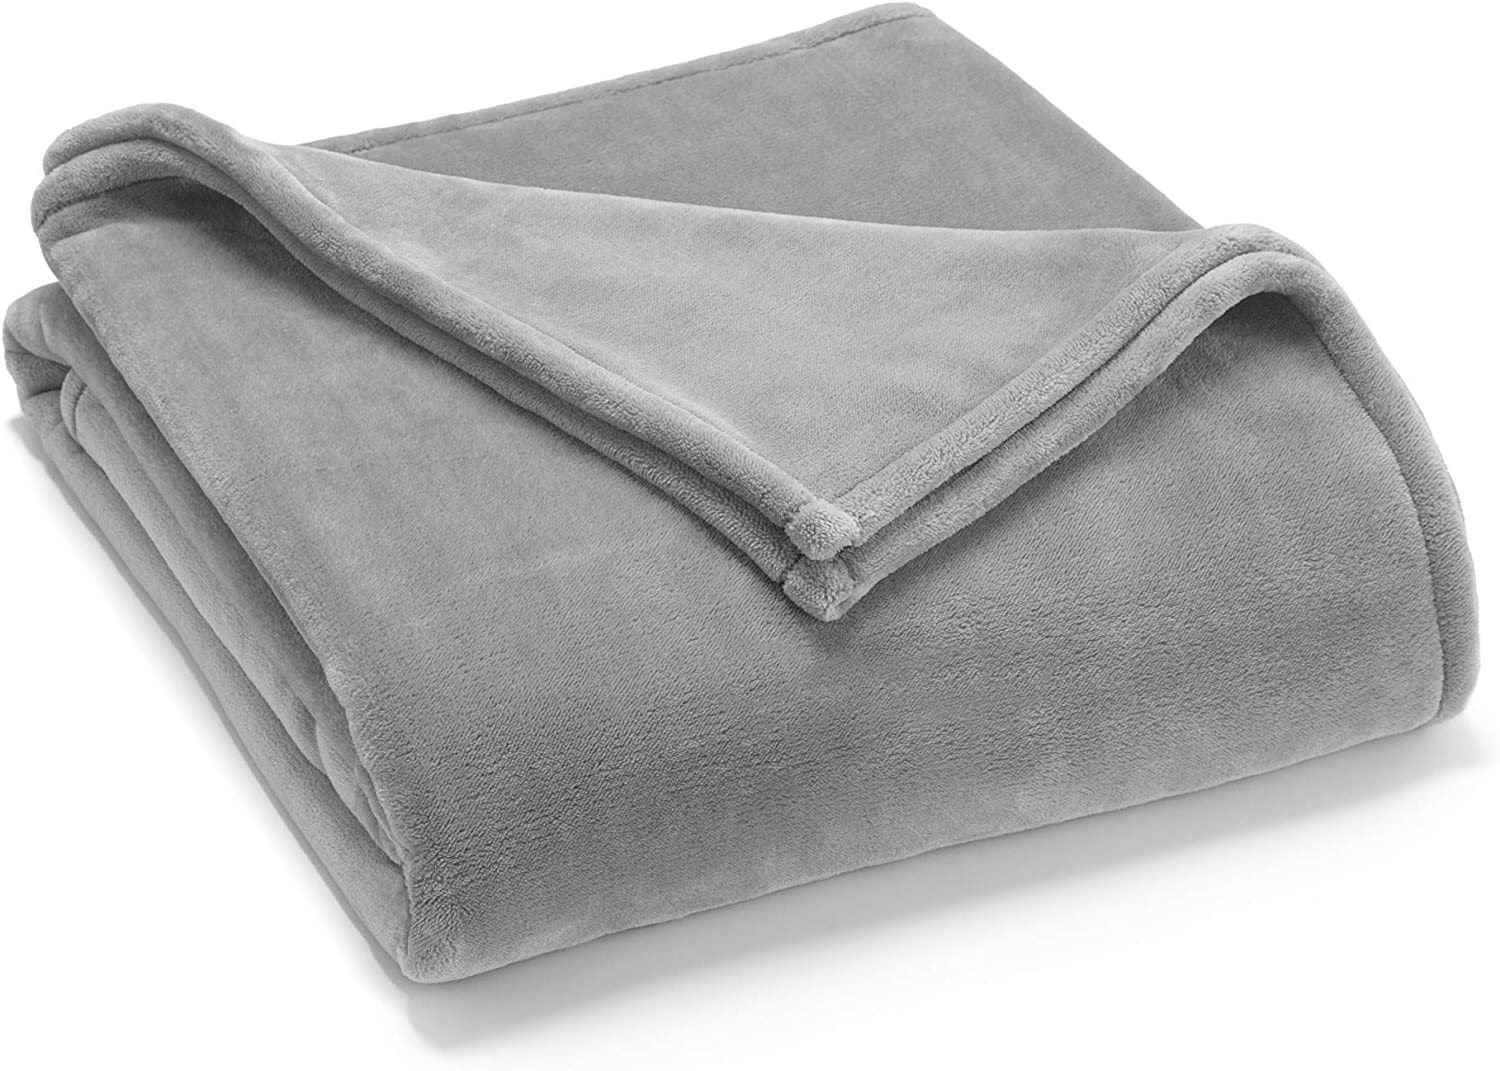 Vellux Sheared Mink Luxury Blanket- Super Soft and Cozy, Warm, Fluffy and Fuzzy, King, Light Gray